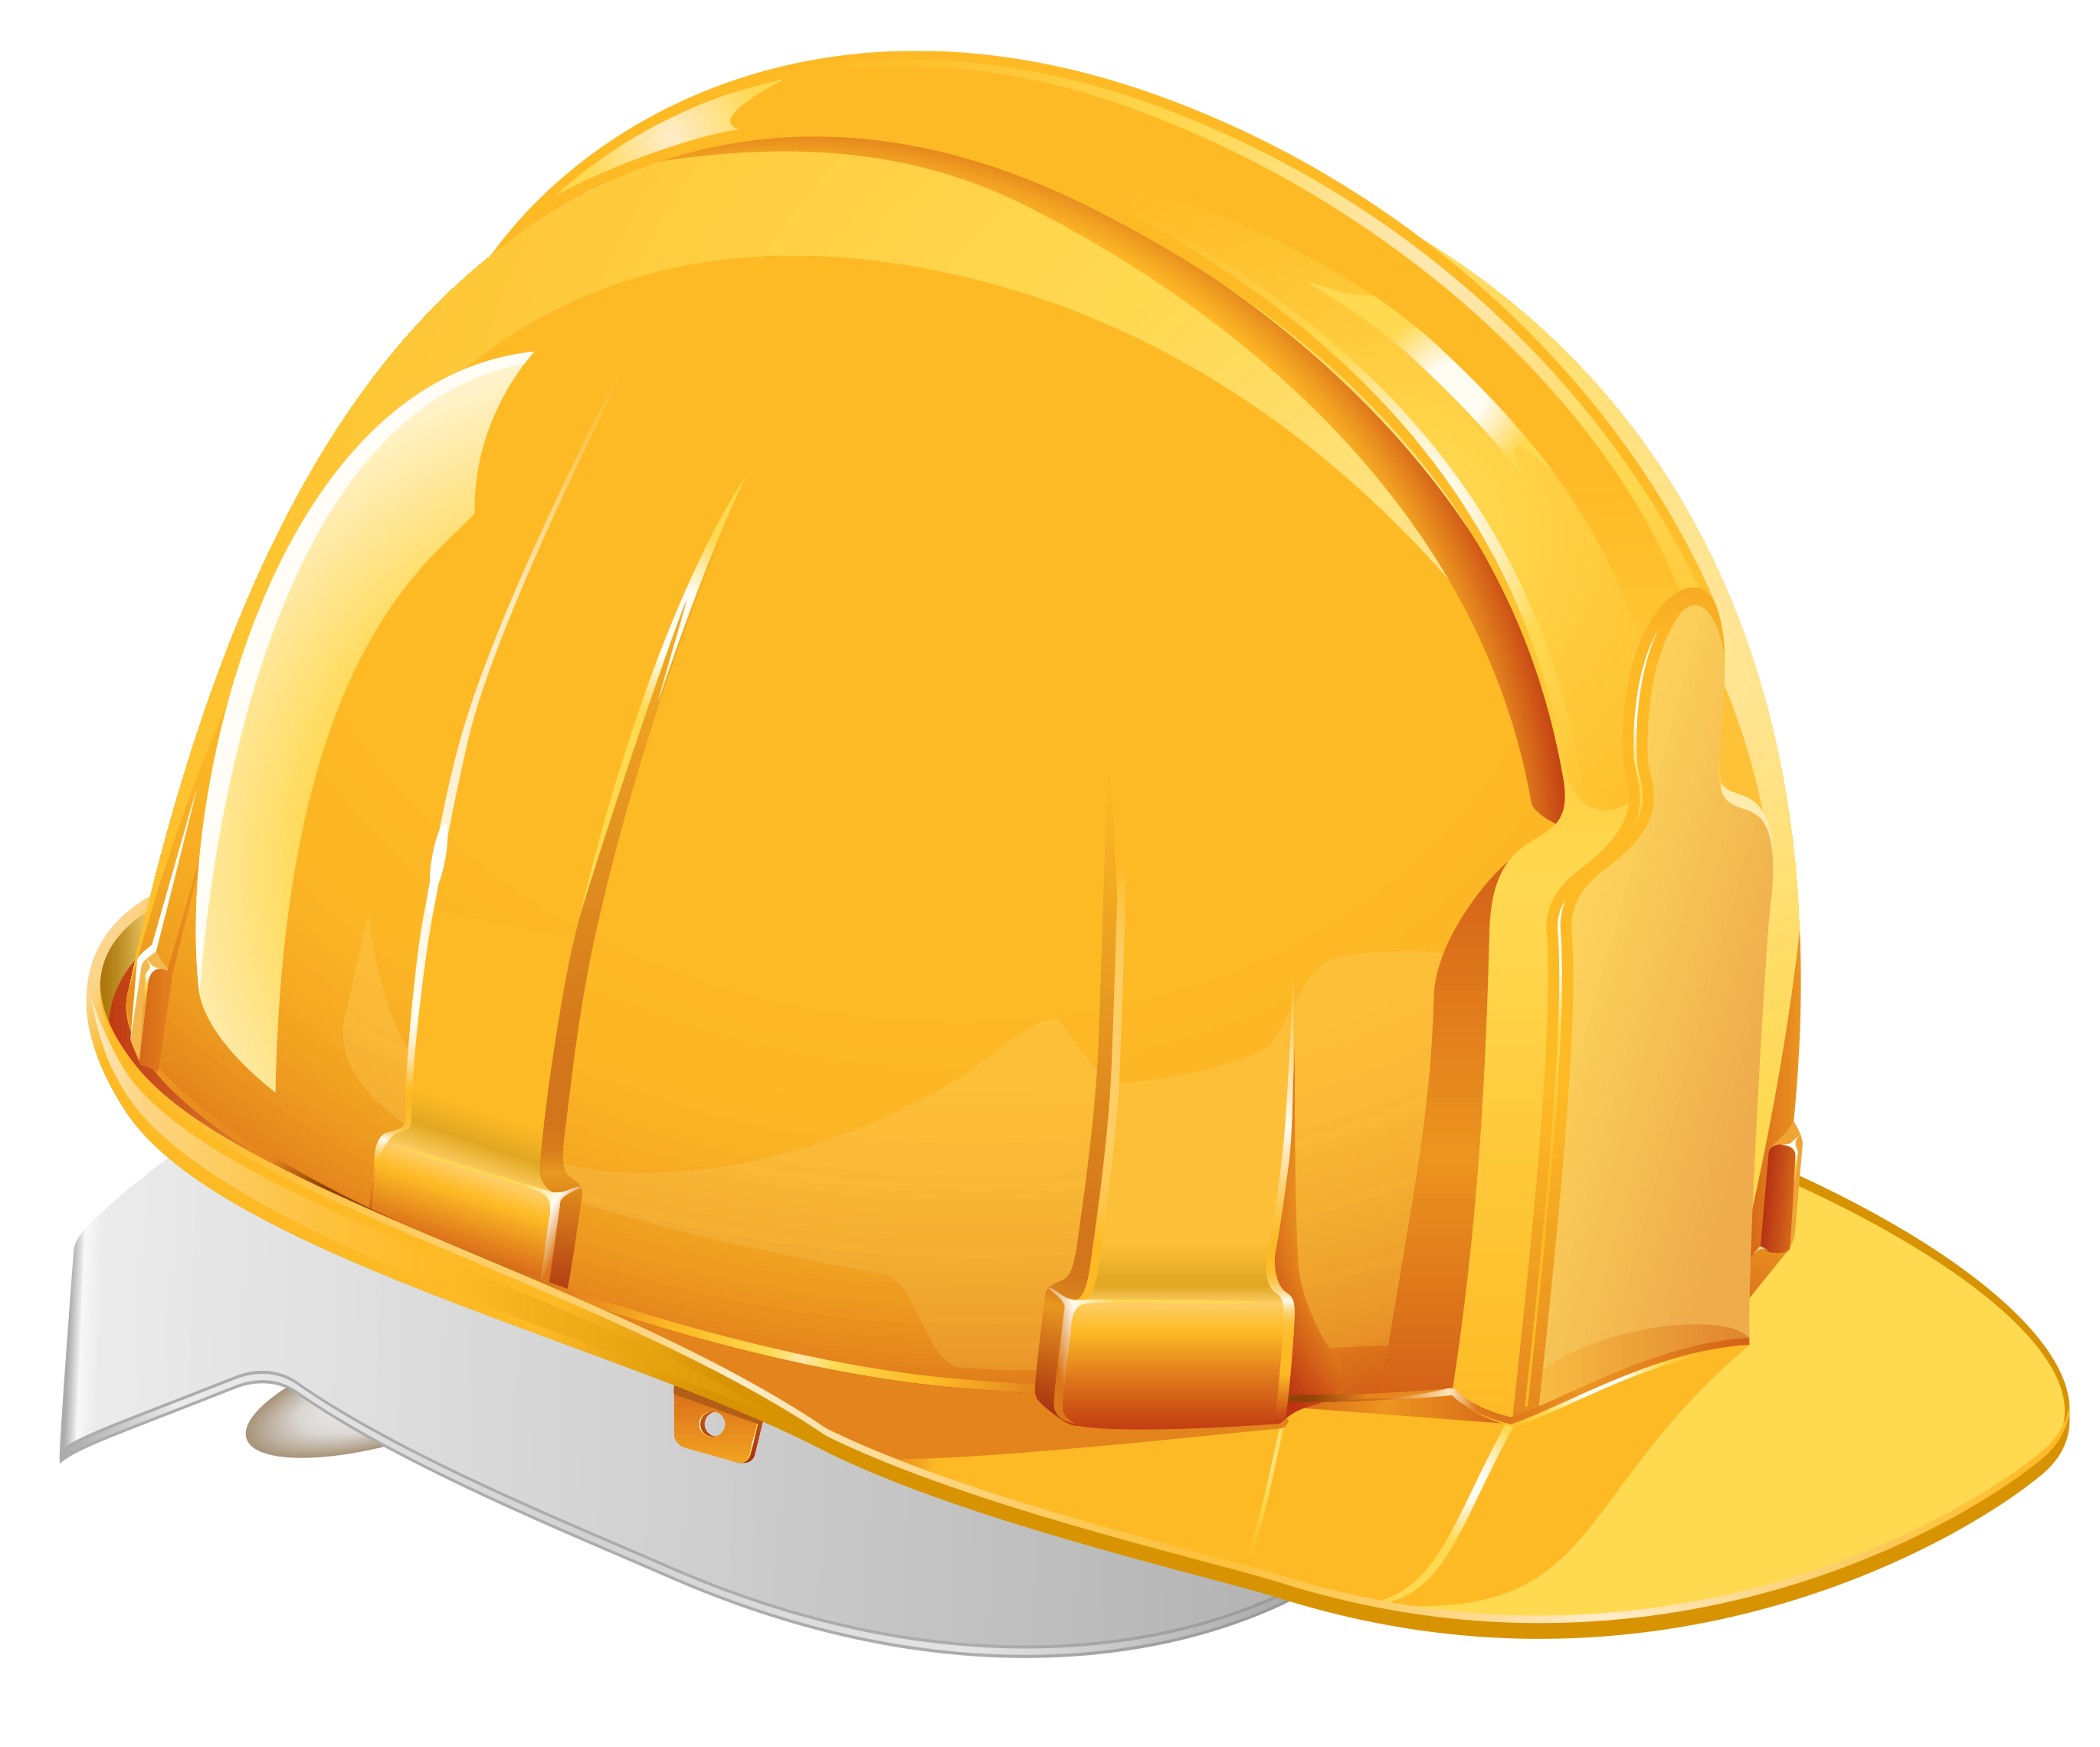 Hard Hat Png Vector Clipart Clip Art Pictures Construction Hat Displaying Kids Artwork